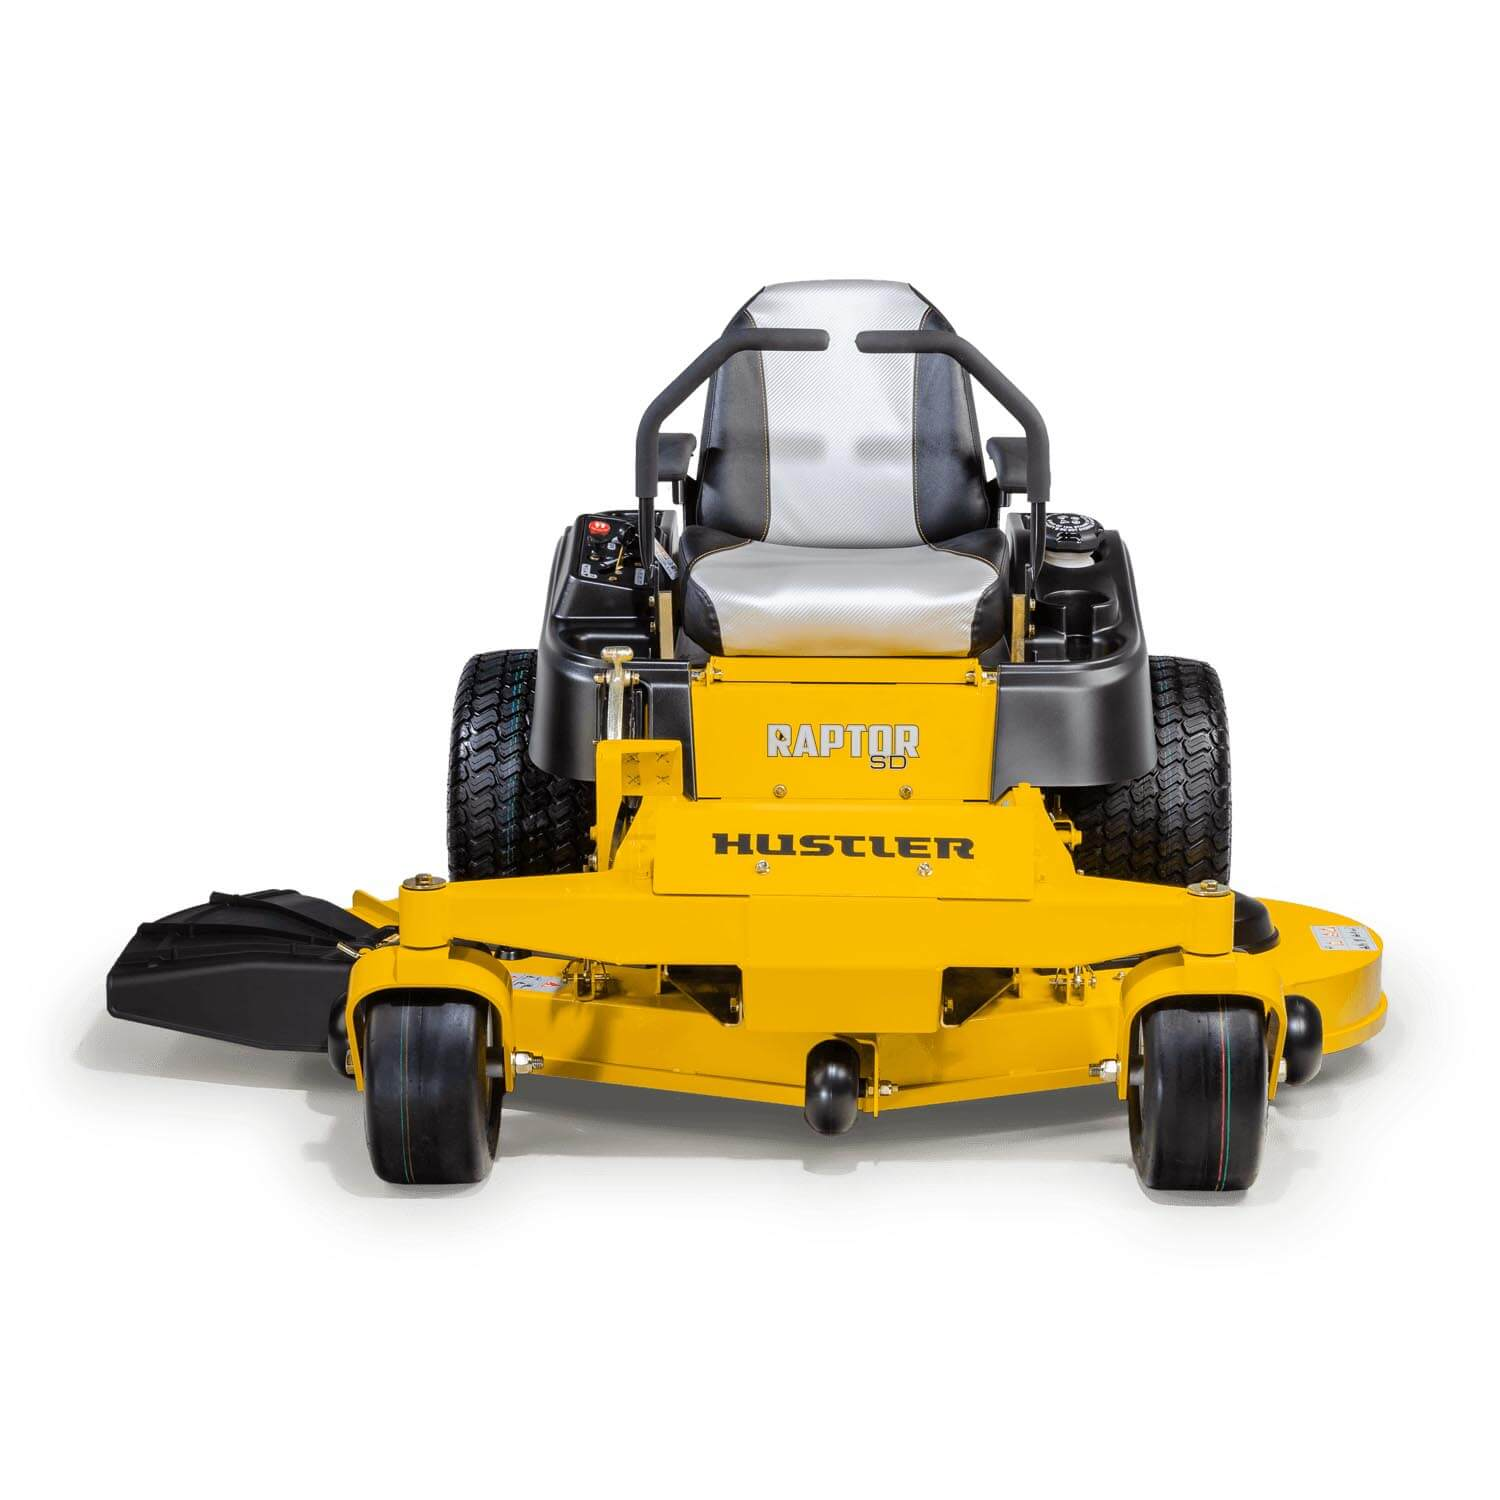 Image of the front of a yellow Hustler mower